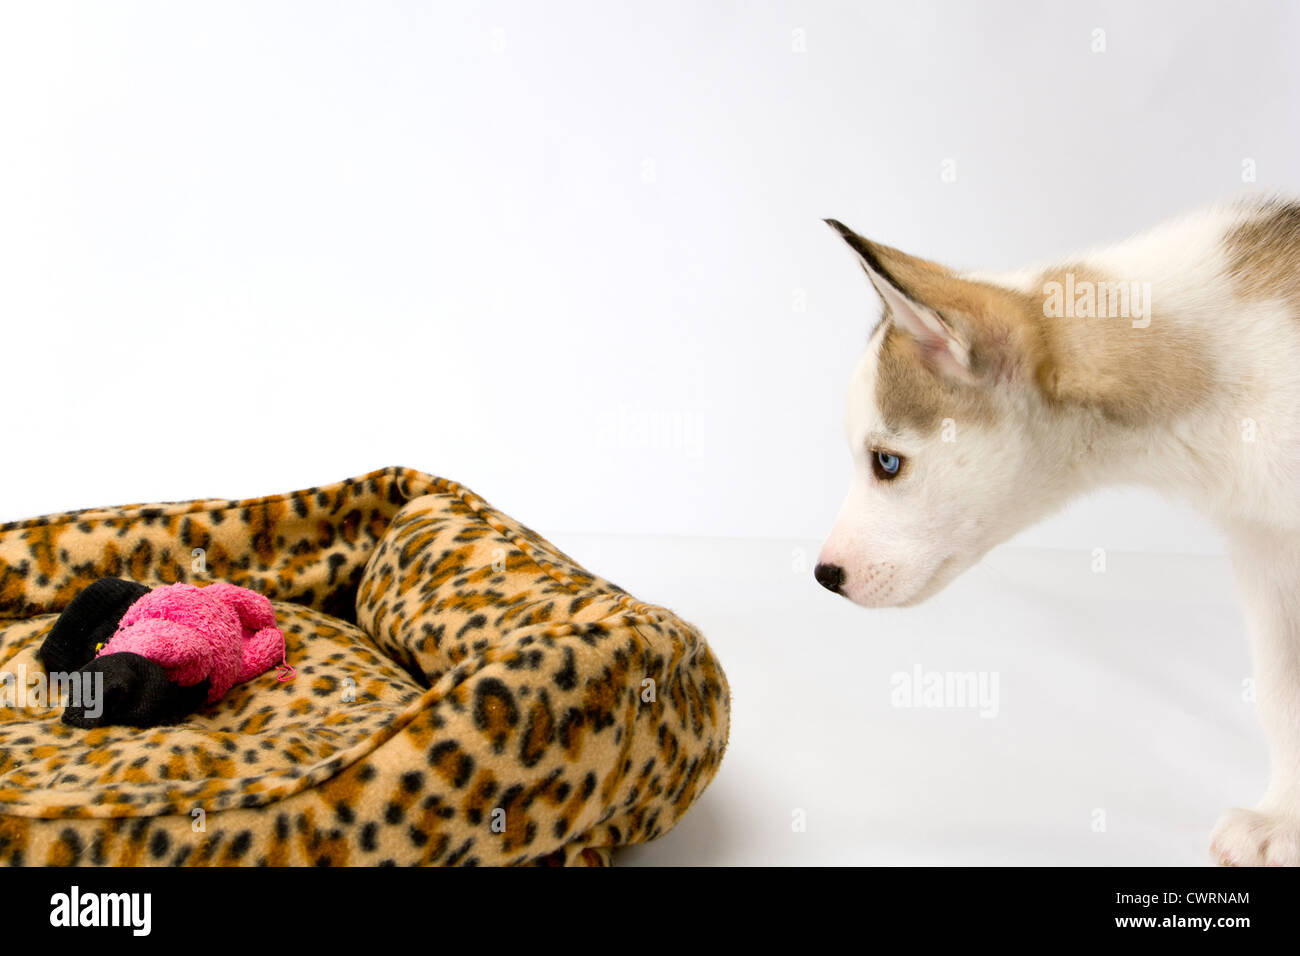 A cute young Husky dog puppy with piercing blue eyes inspecting his bed on a white seamless backdrop - Stock Image